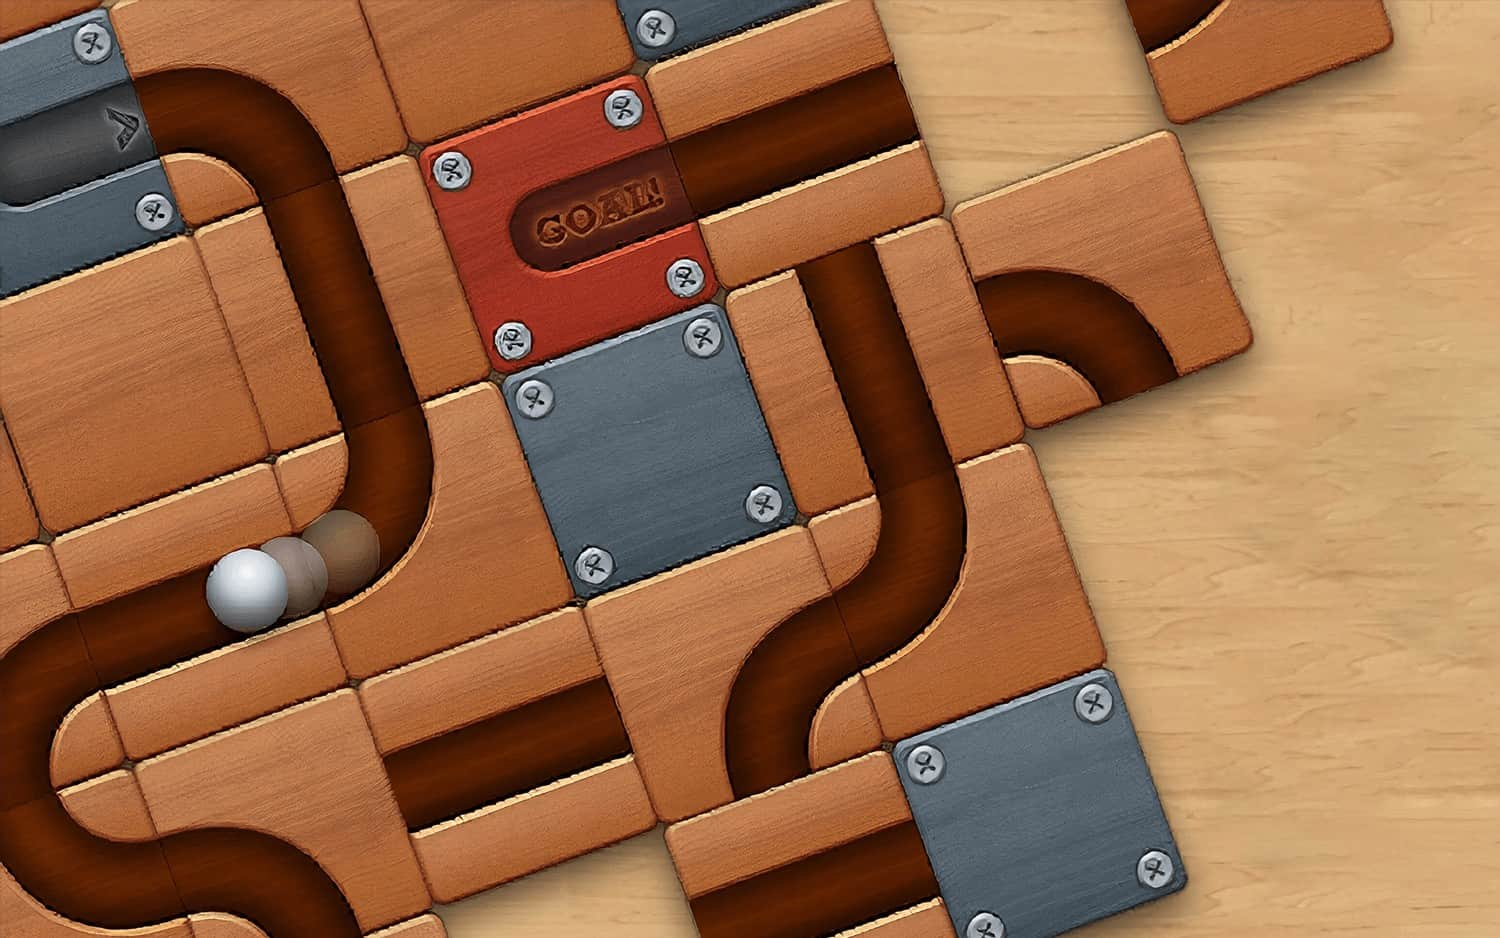 Best Puzzle Games For Android To Train Your Mind In Fun Way